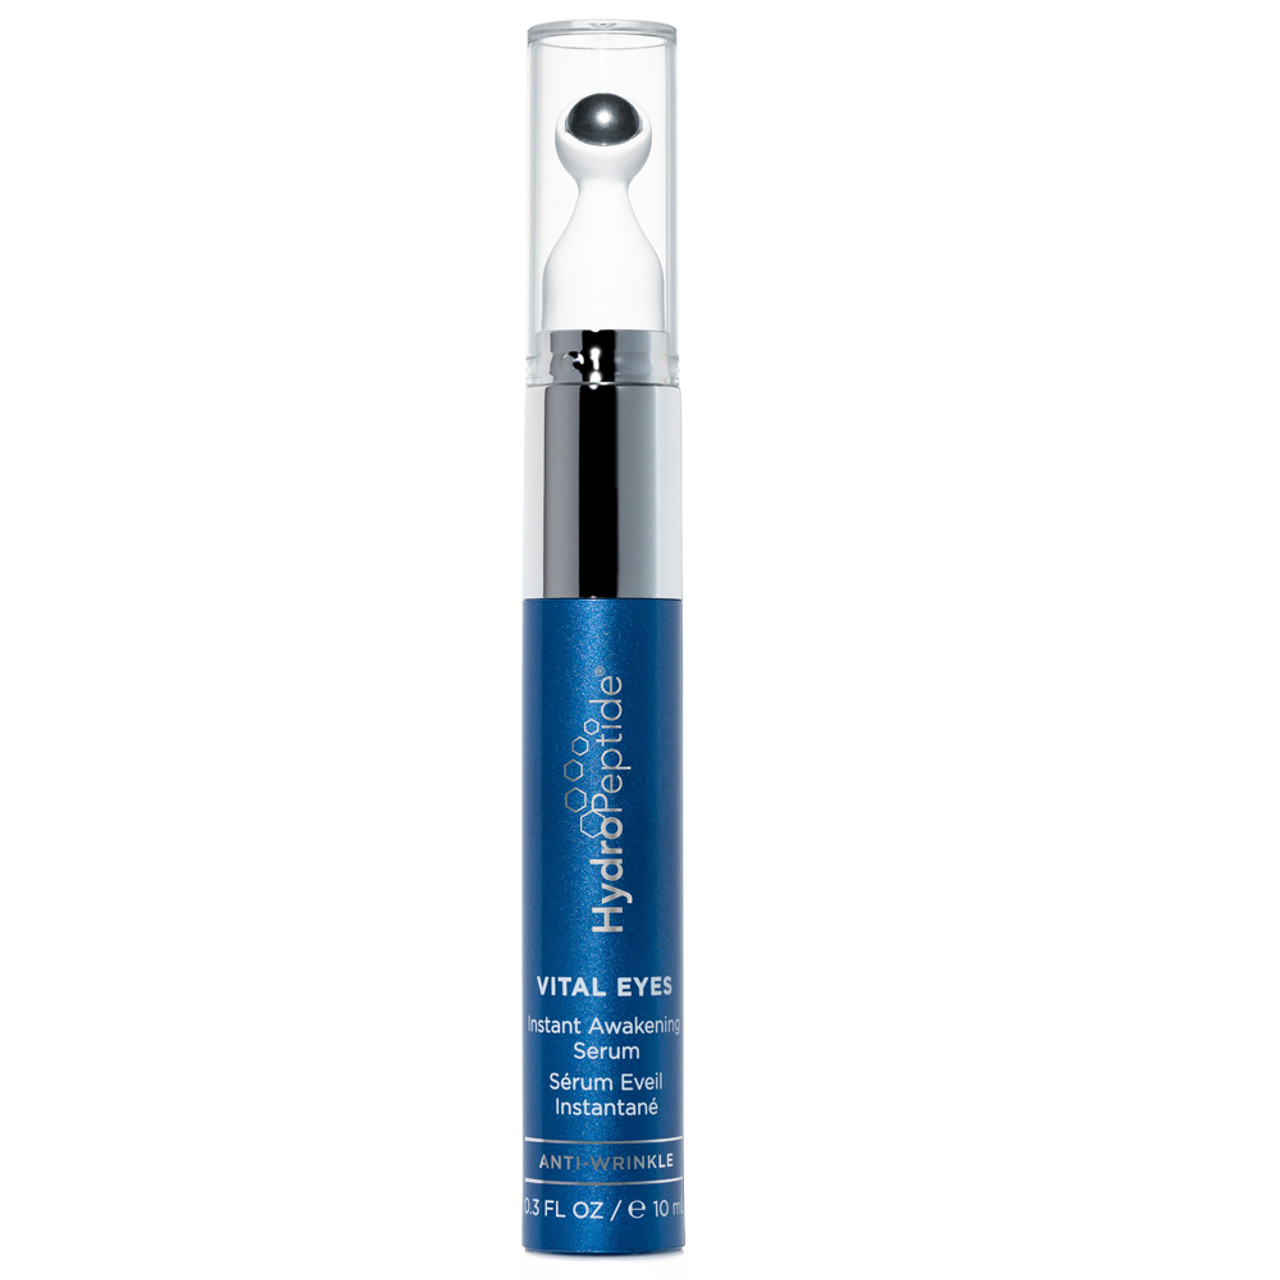 HydroPeptide Vital Eyes Instant Awakening Eye Serum